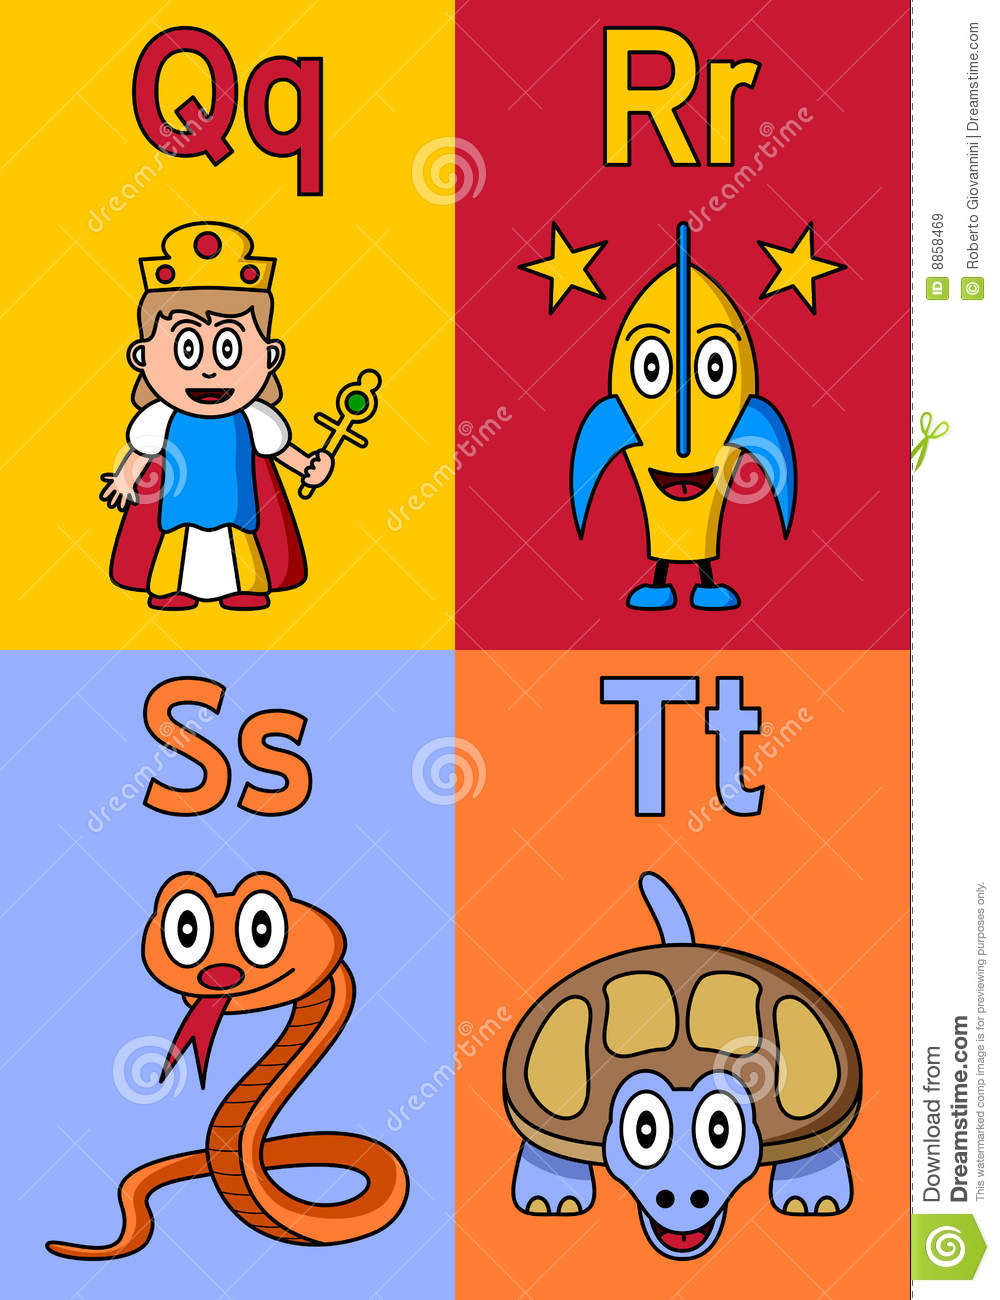 Worksheet Alphabet For Kindergarten alphabet for kindergarten laptuoso q t royalty free stock images image 8858469